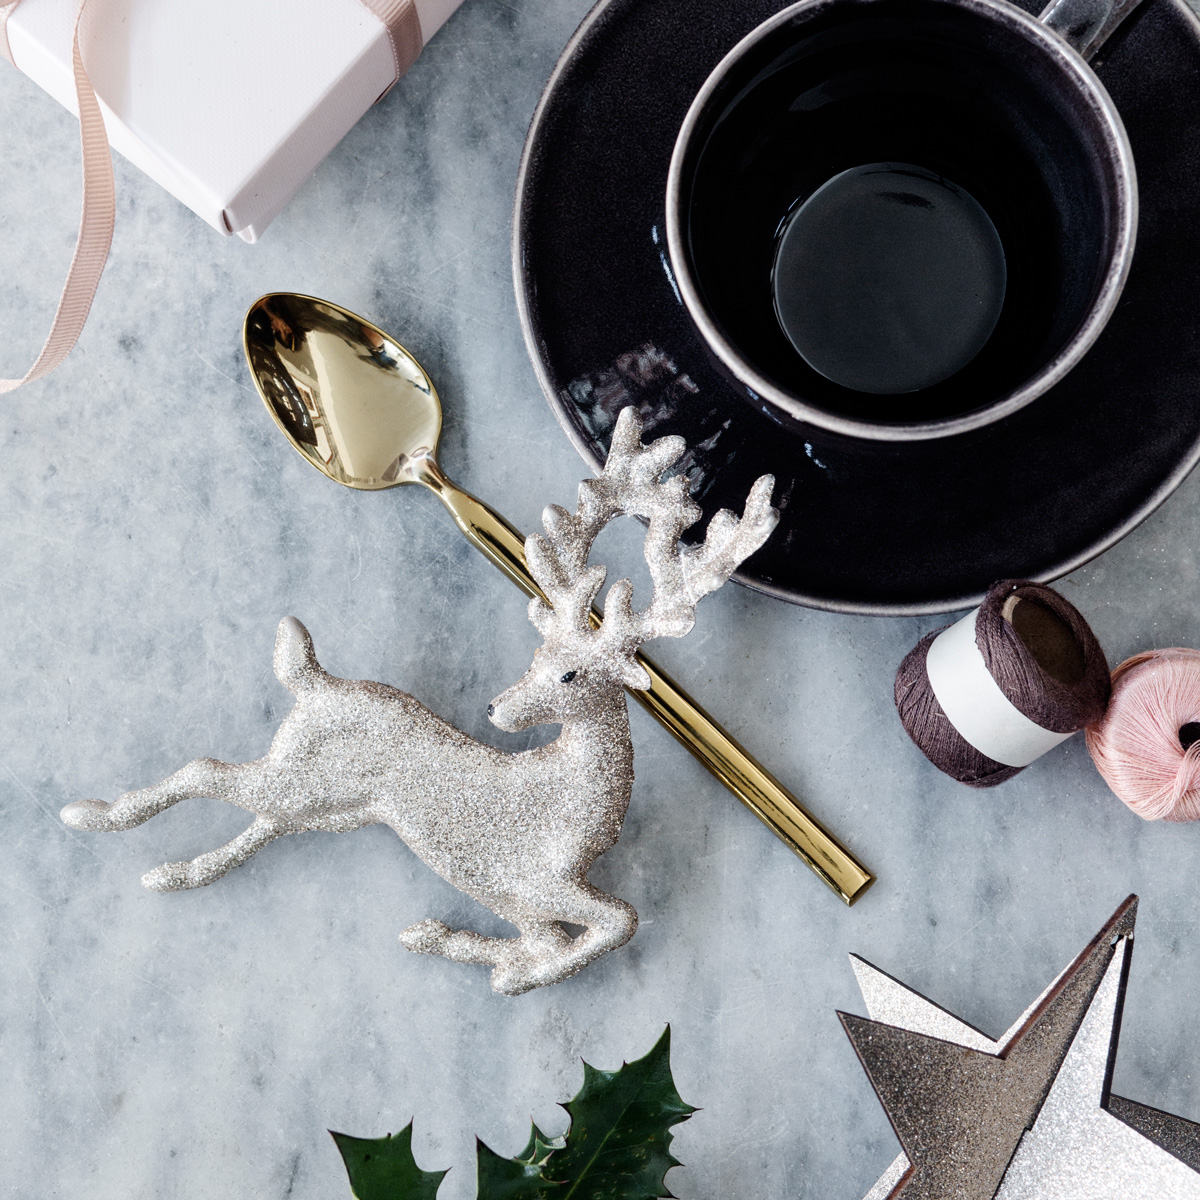 Broste reindeer ornaments & gold Hune teaspoon lifestyle table image 0345